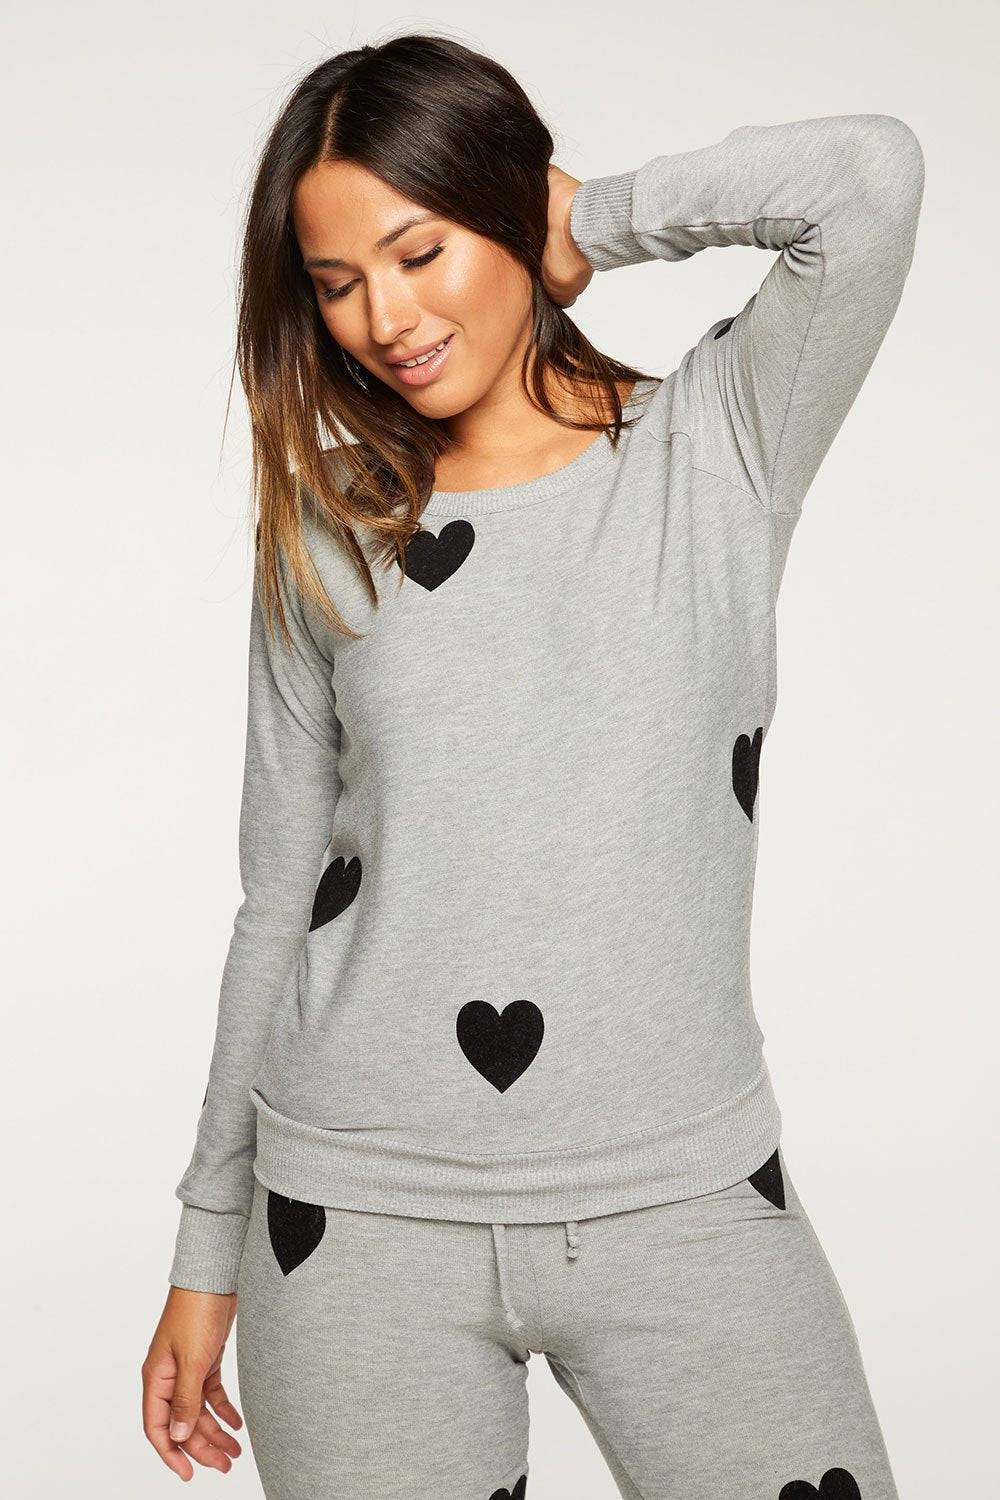 Flocked Hearts Sweater